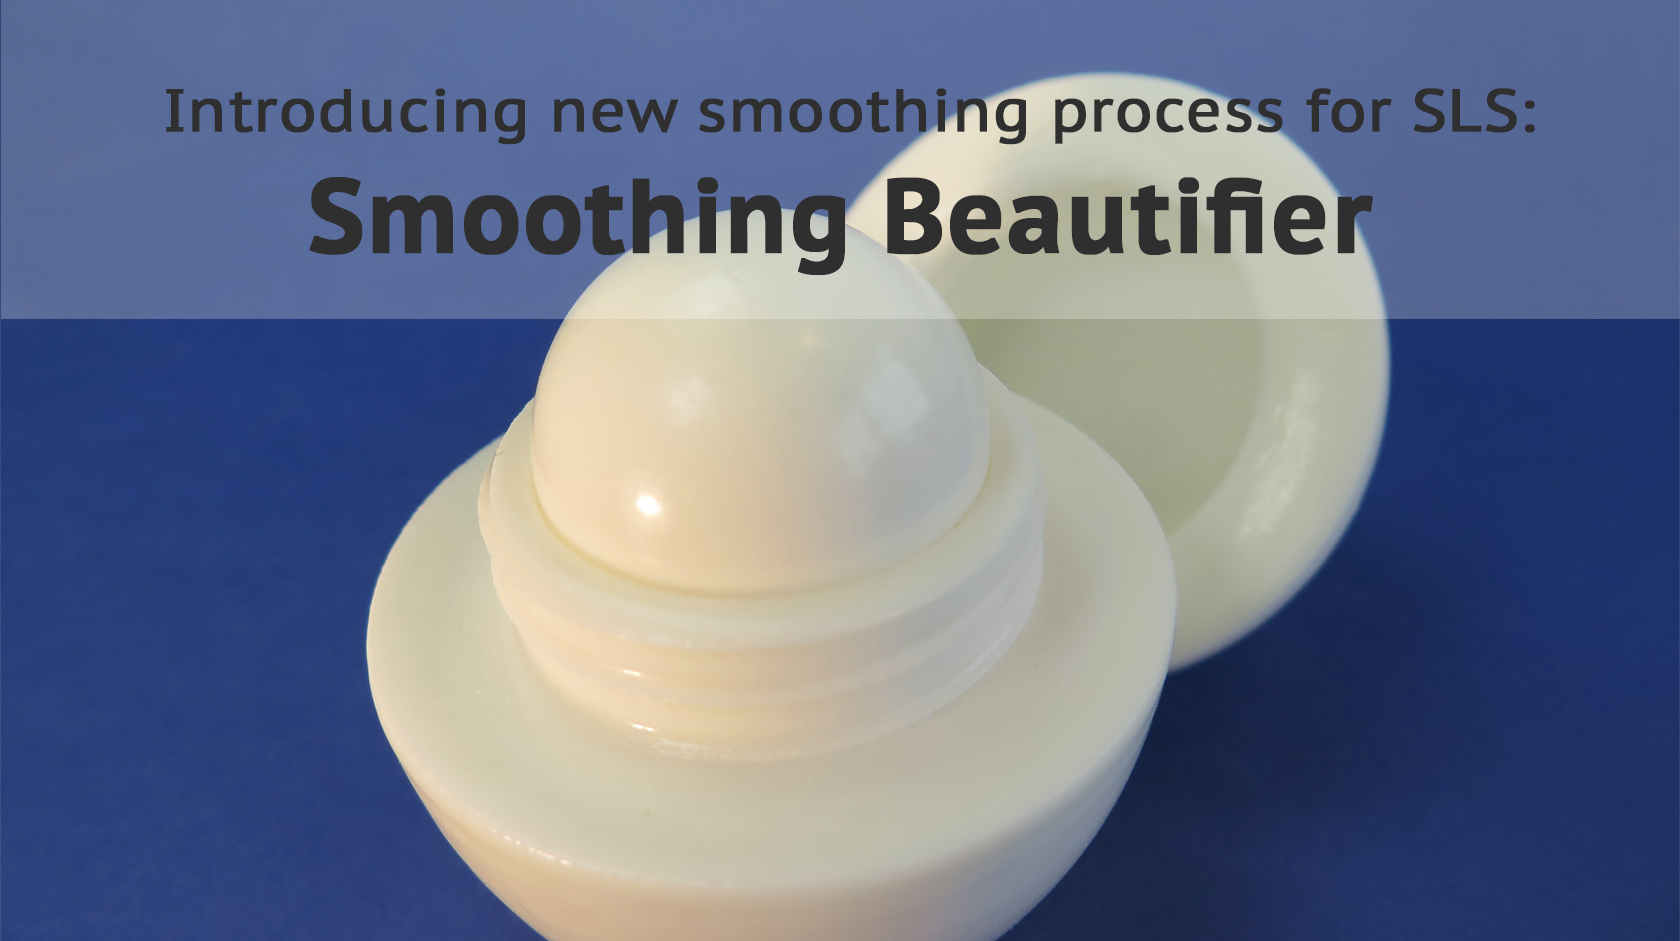 Introducing the smoothing beautifier for plastic 3D prints